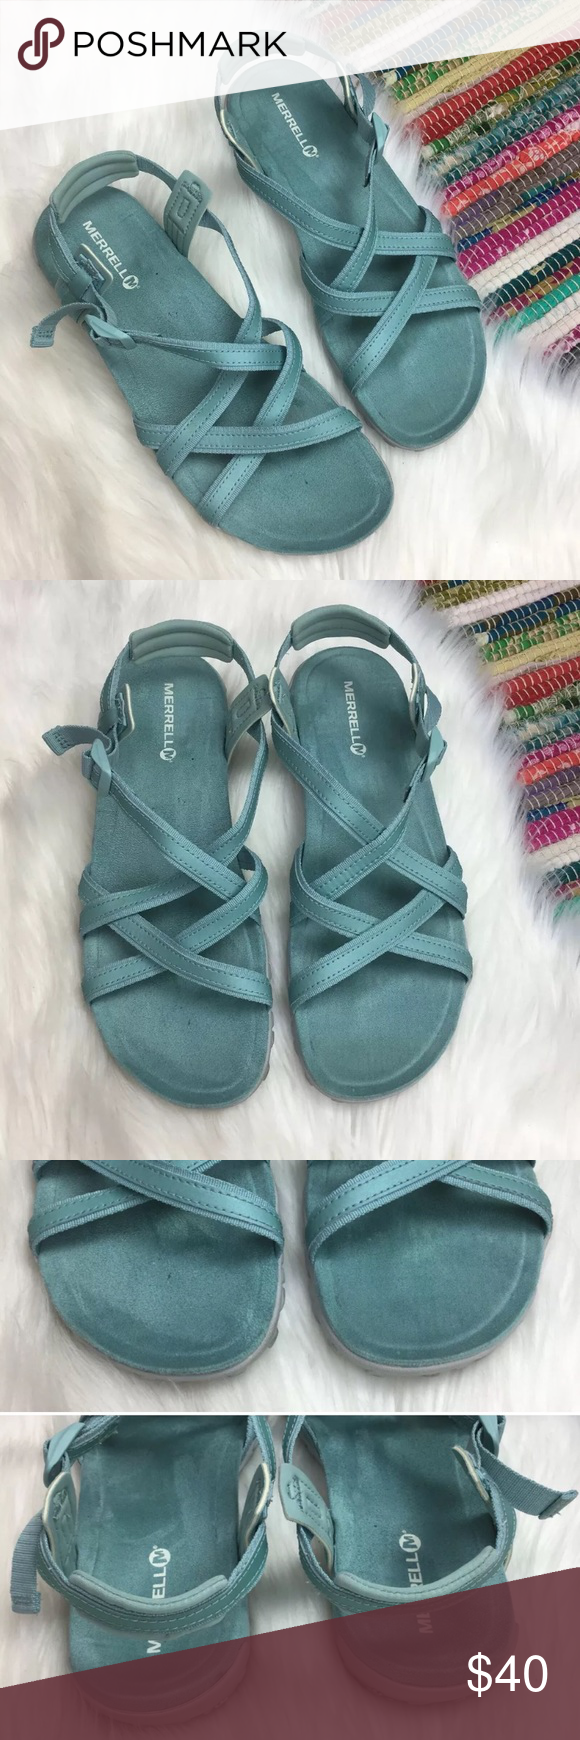 7fbfc8d07954 Merrell Terran Lattice Strappy Sandals Aqua Sz 11 Merrell Womens Terran Ari Lattice  Sandals Brand